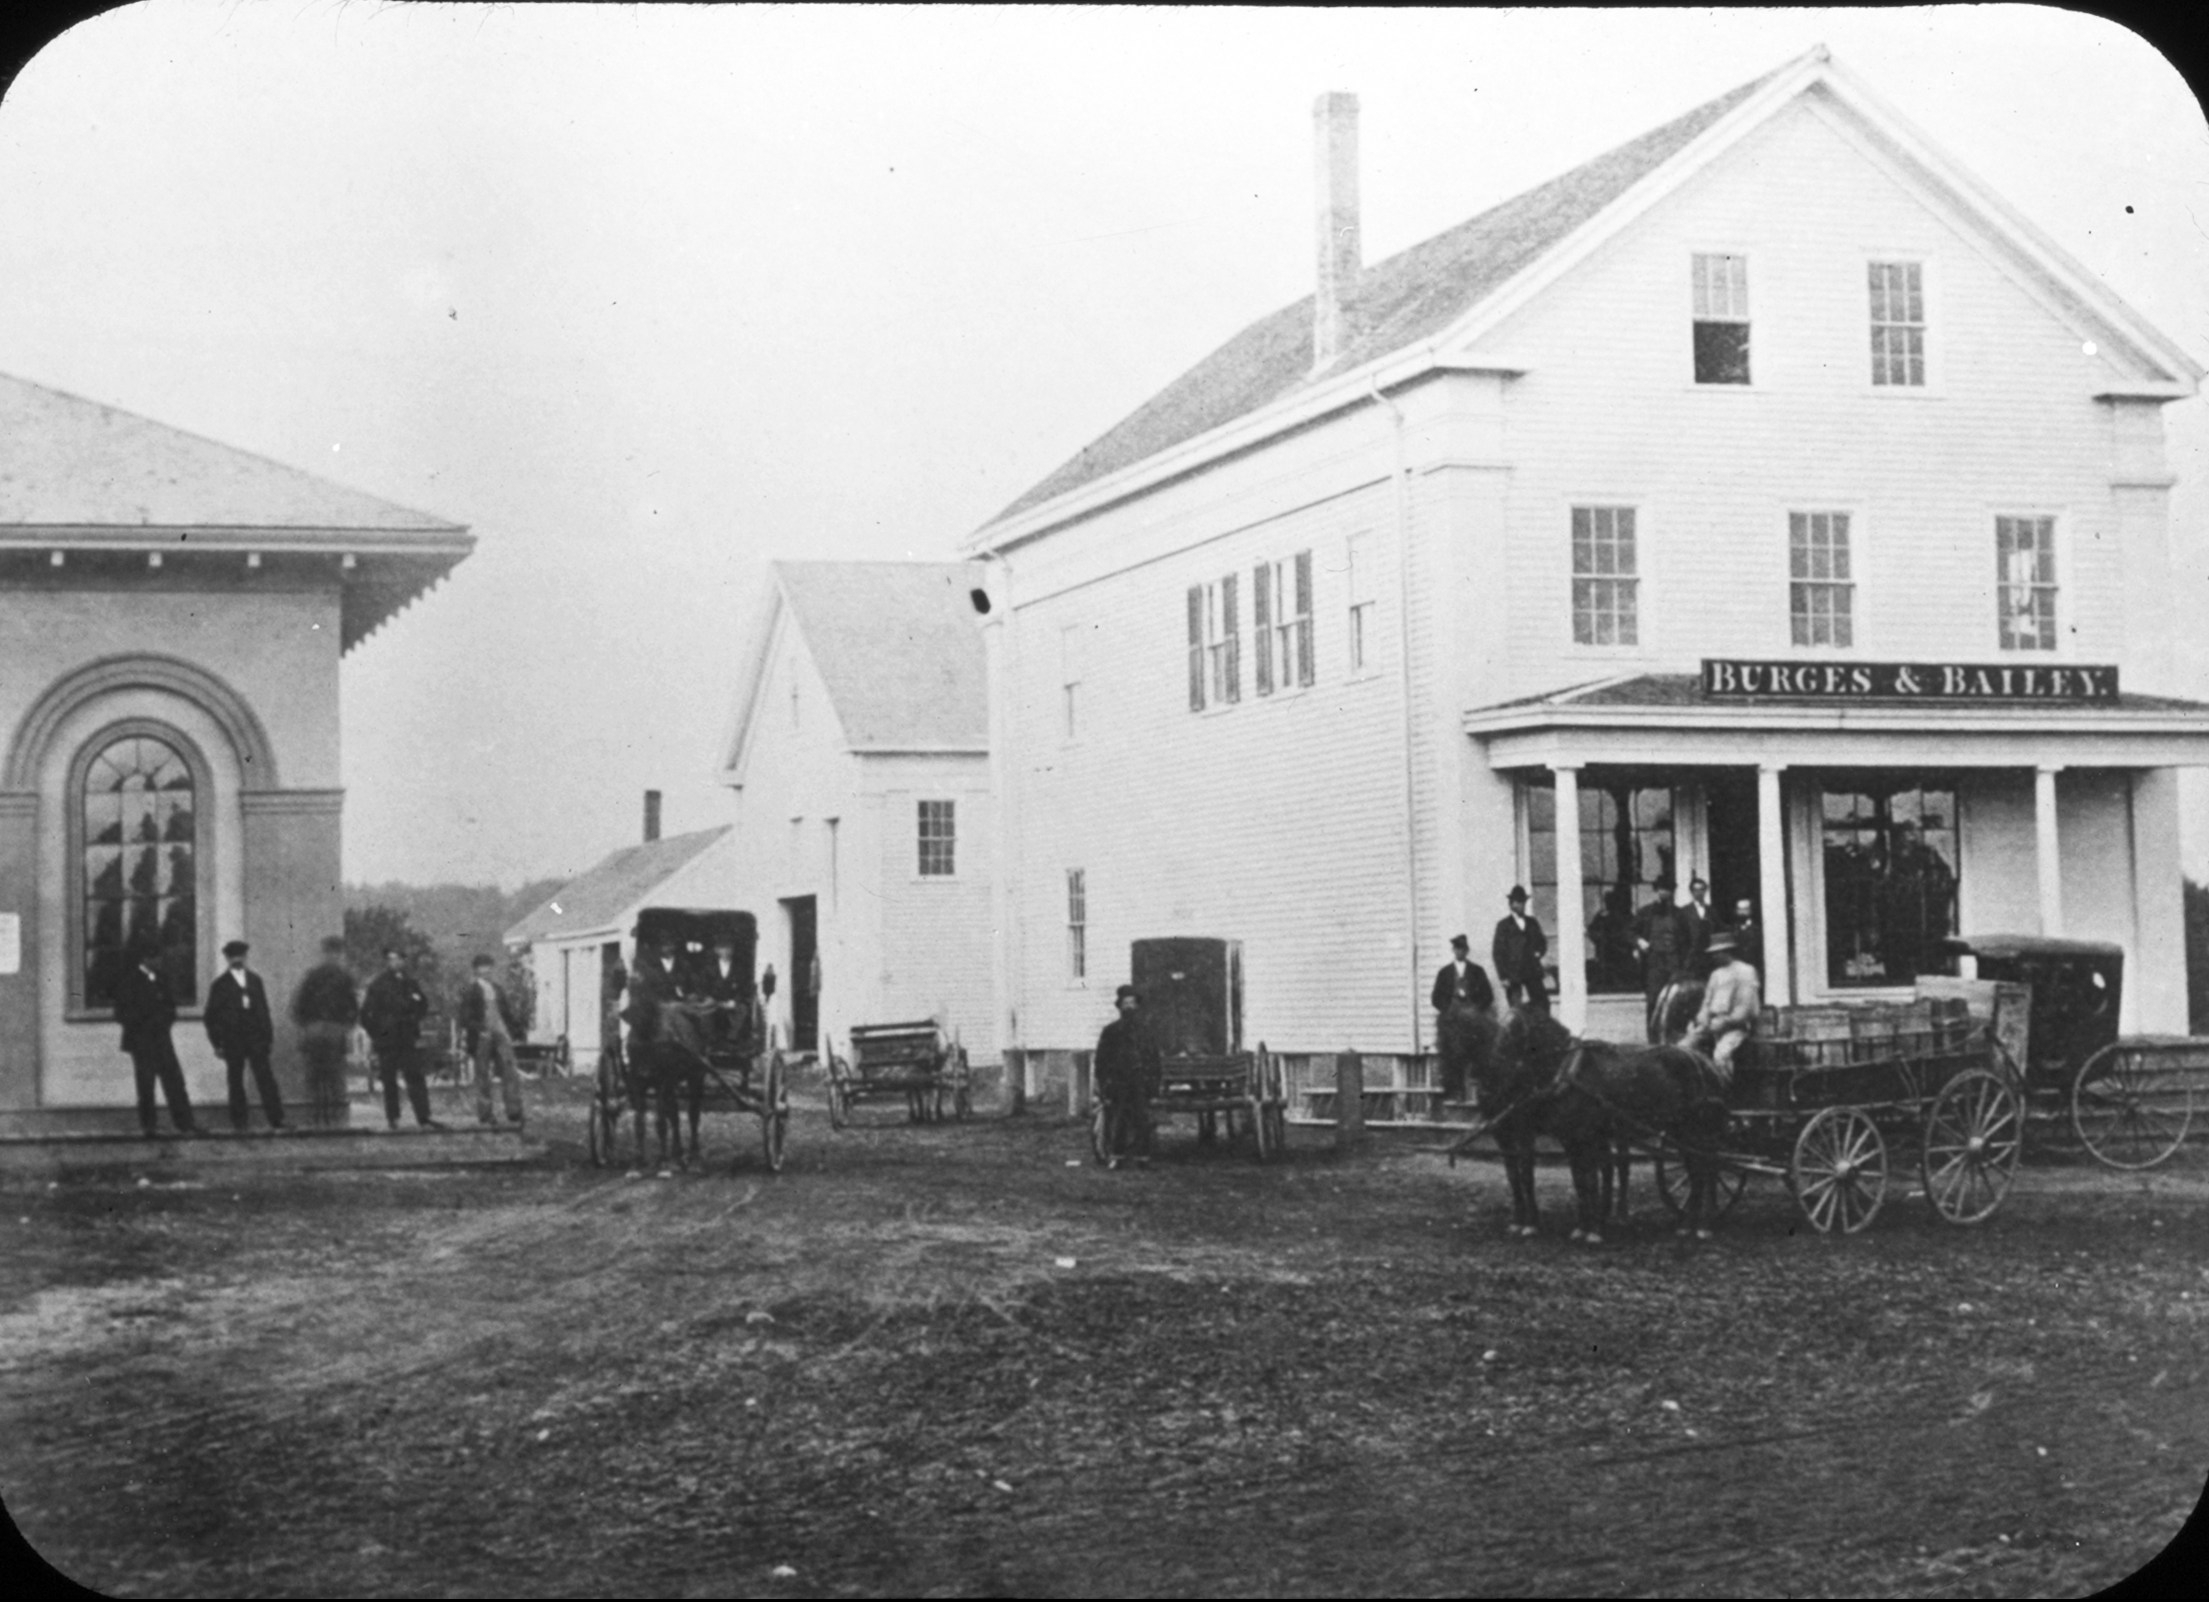 Old Railroad Station and Burges and Bailey Store, 1868